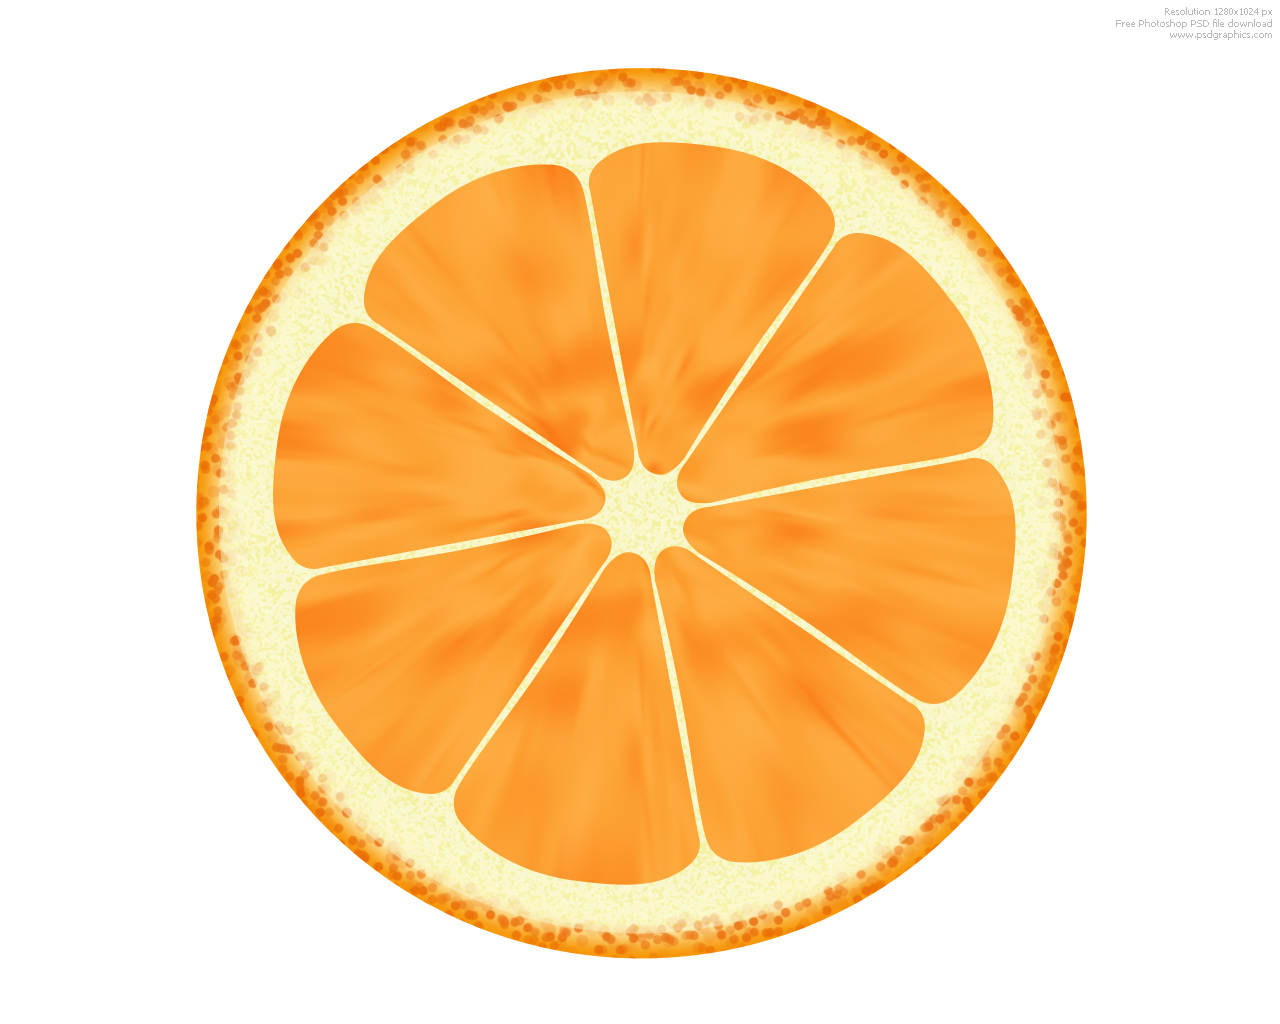 Fruit illustrations, lemon and orange icons | PSDGraphics